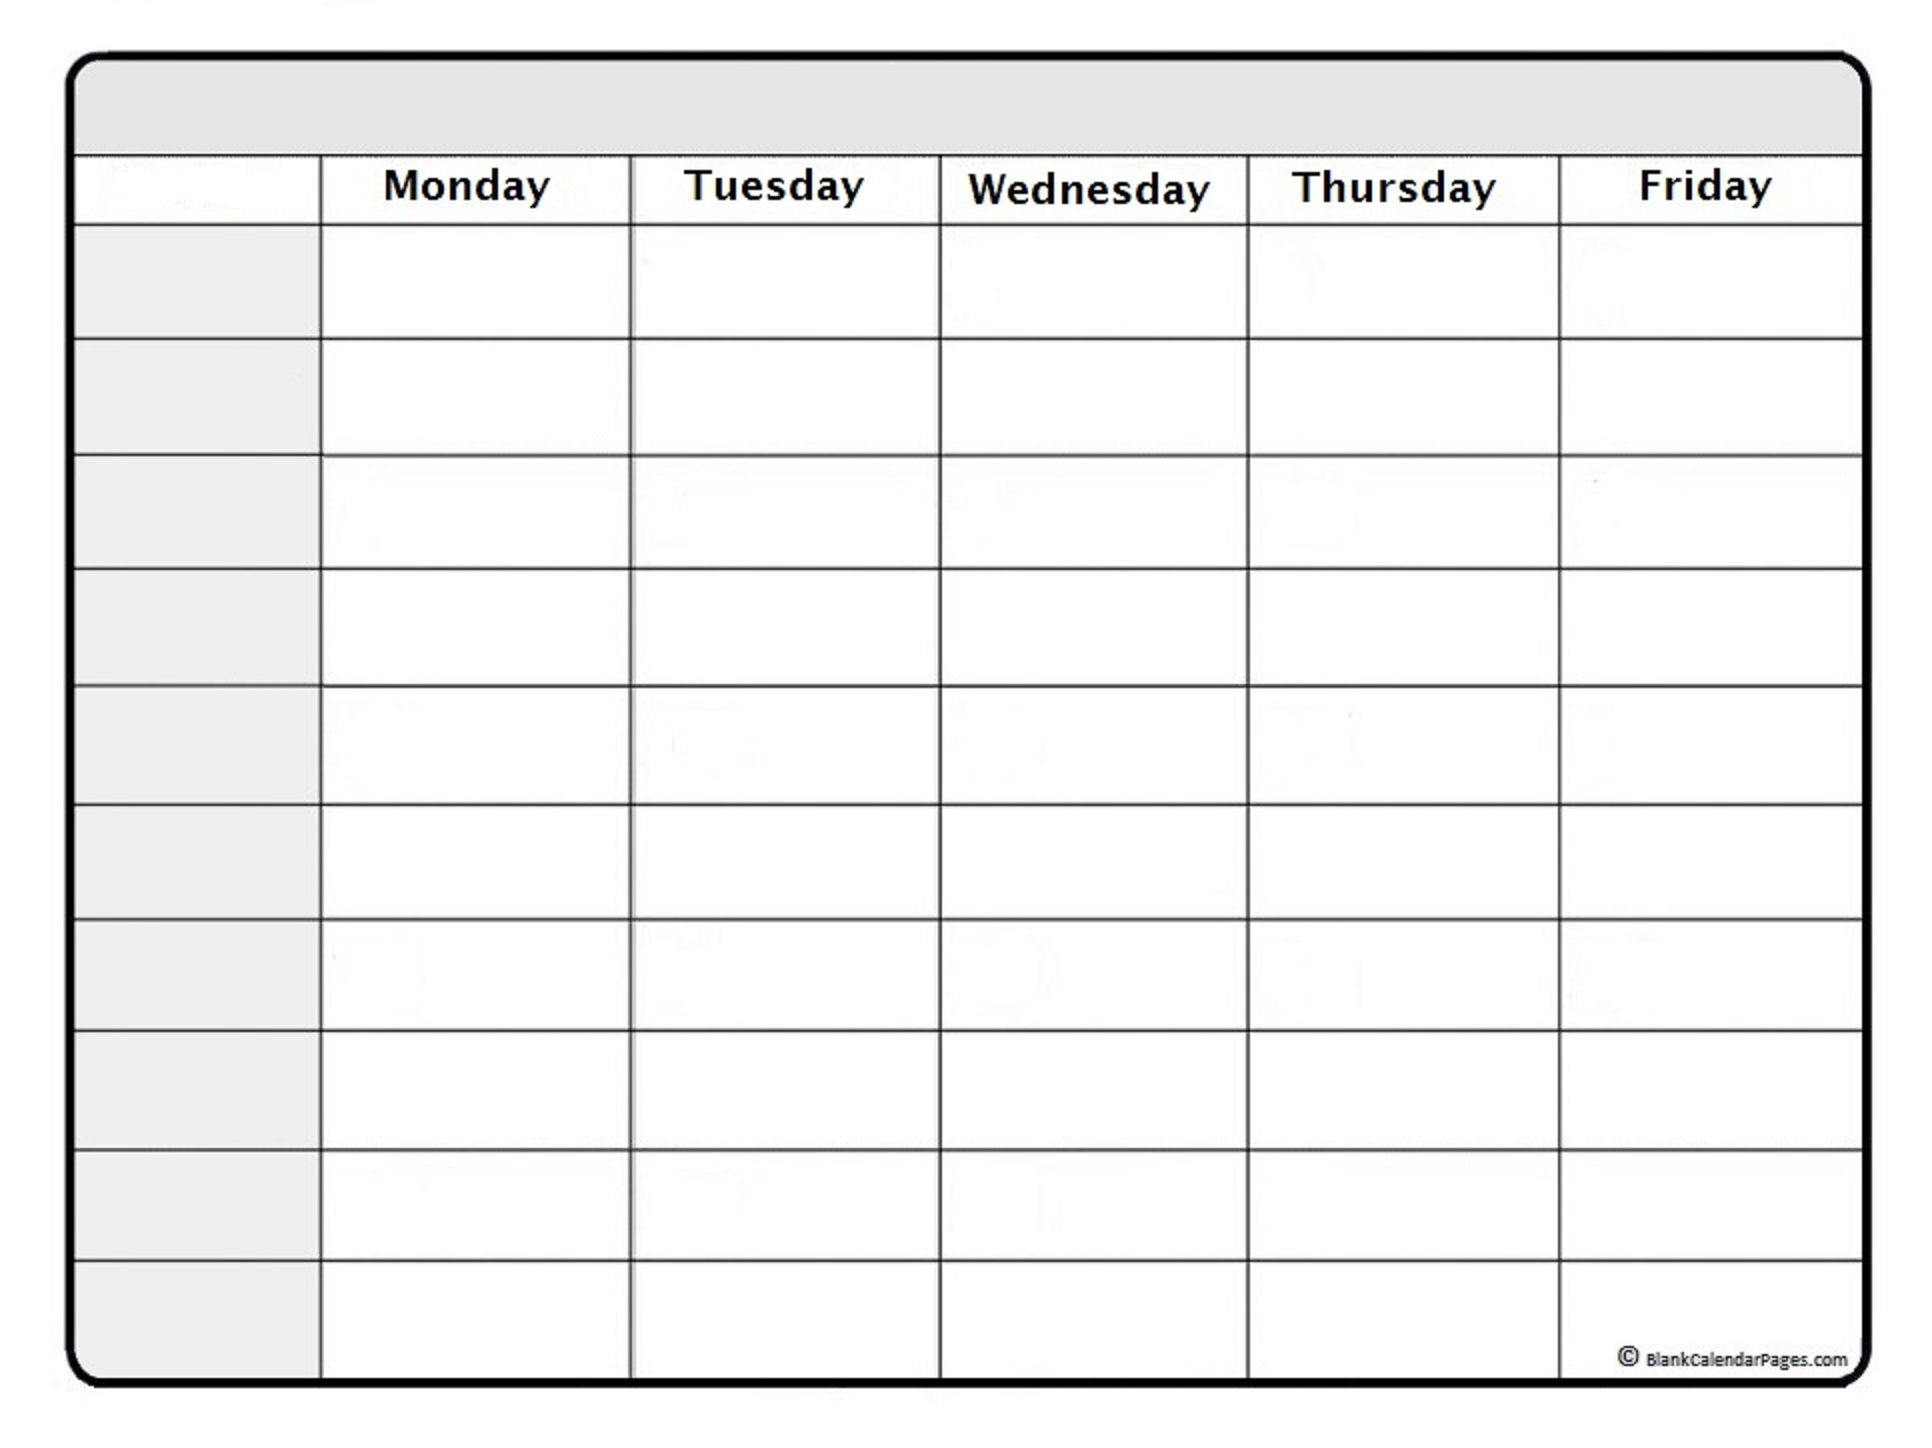 August 2019 Weekly Calendar | August 2019 Weekly Calendar Template pertaining to Blank Calendar Hourly Schedule